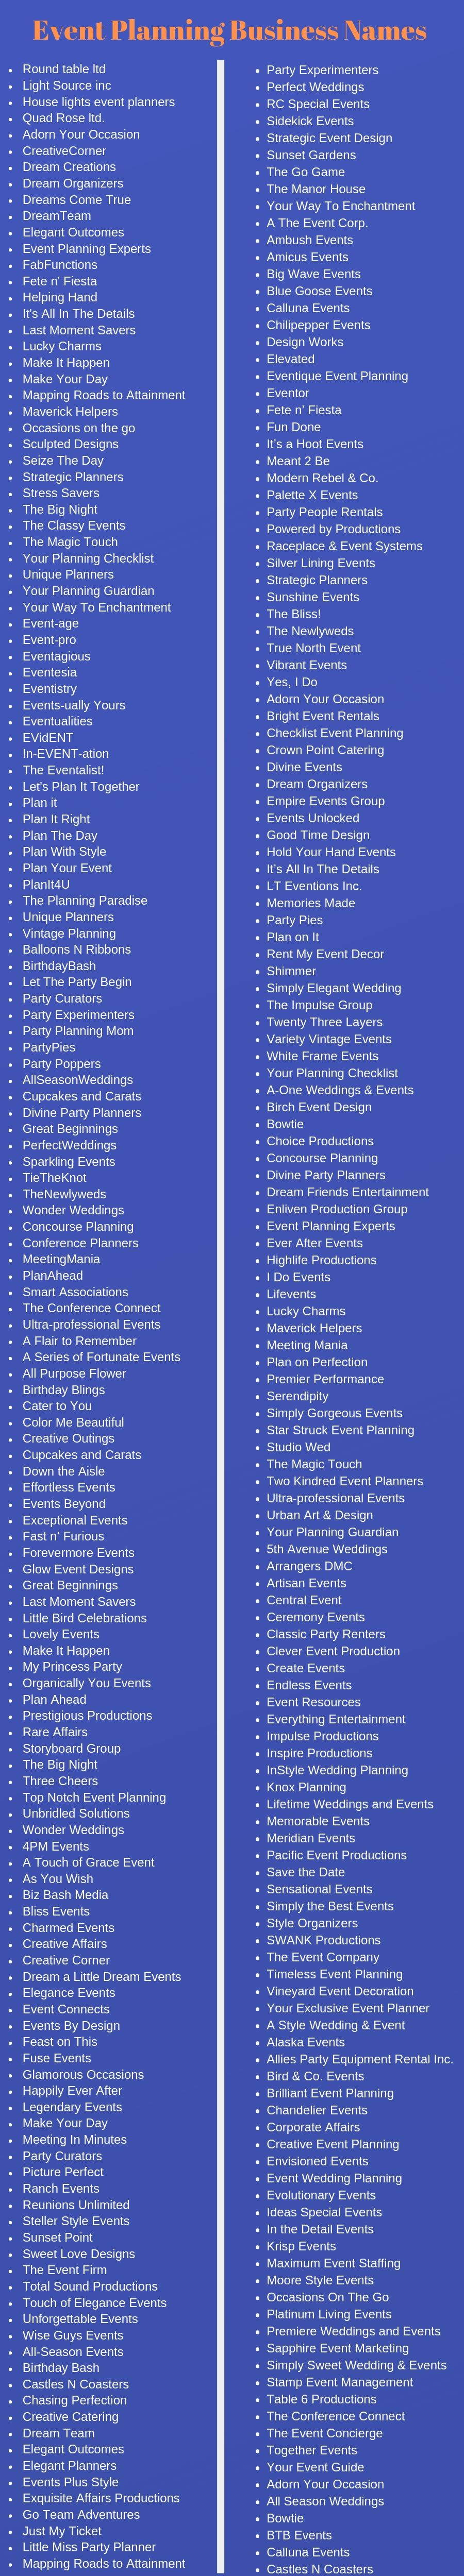 400 Event Planning Business Names Ideas And Suggestions